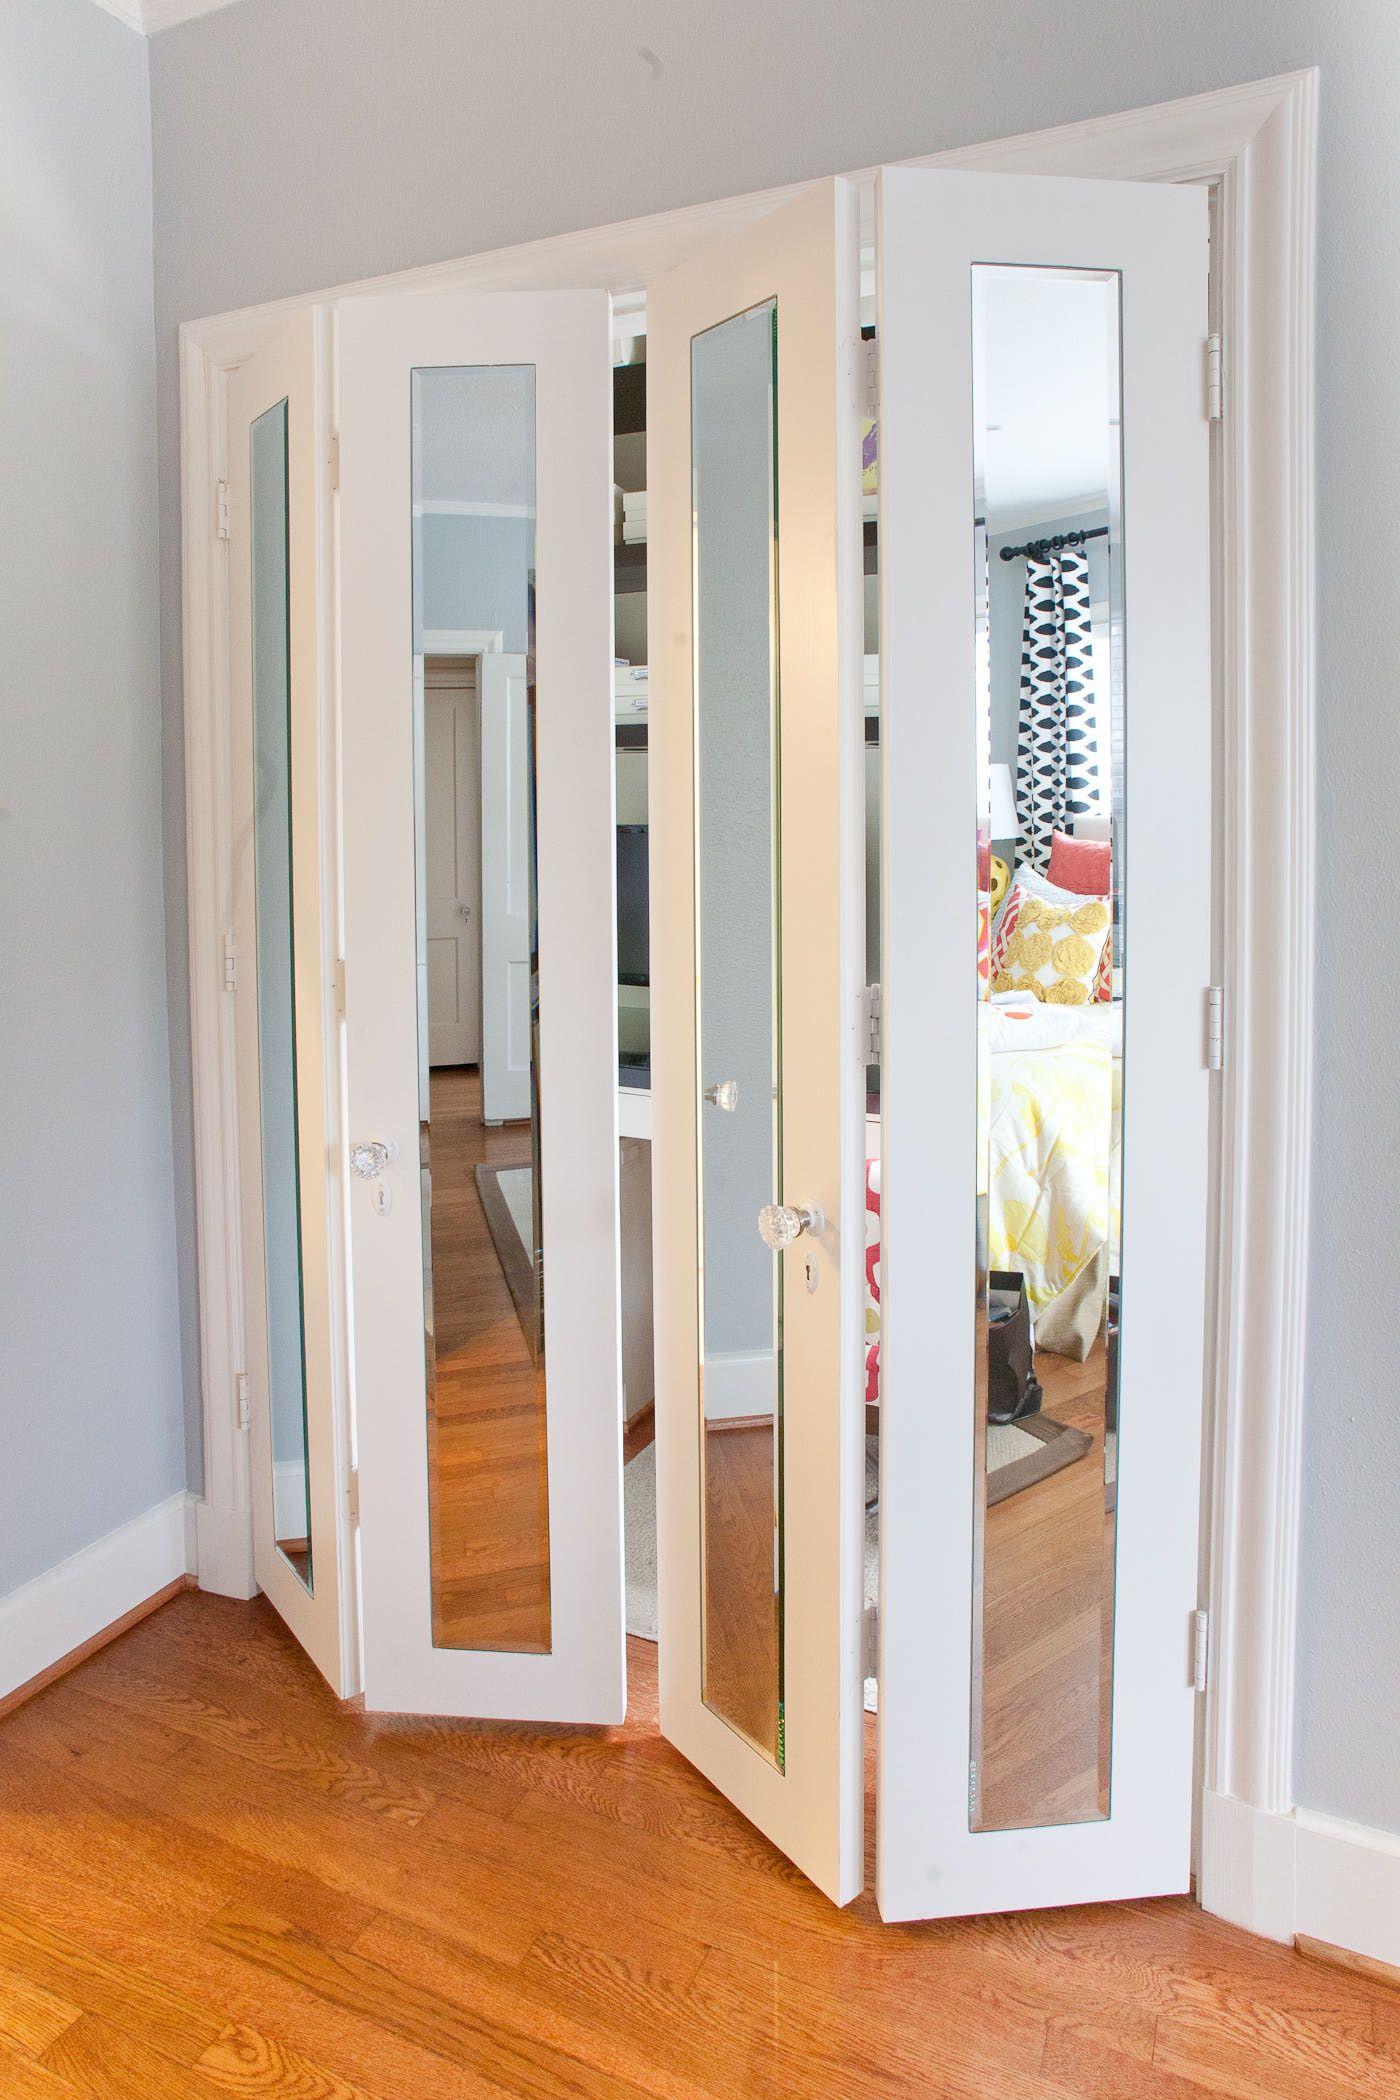 Spruce Up Your Bedroom Closet Doors with e of These Great Ideas